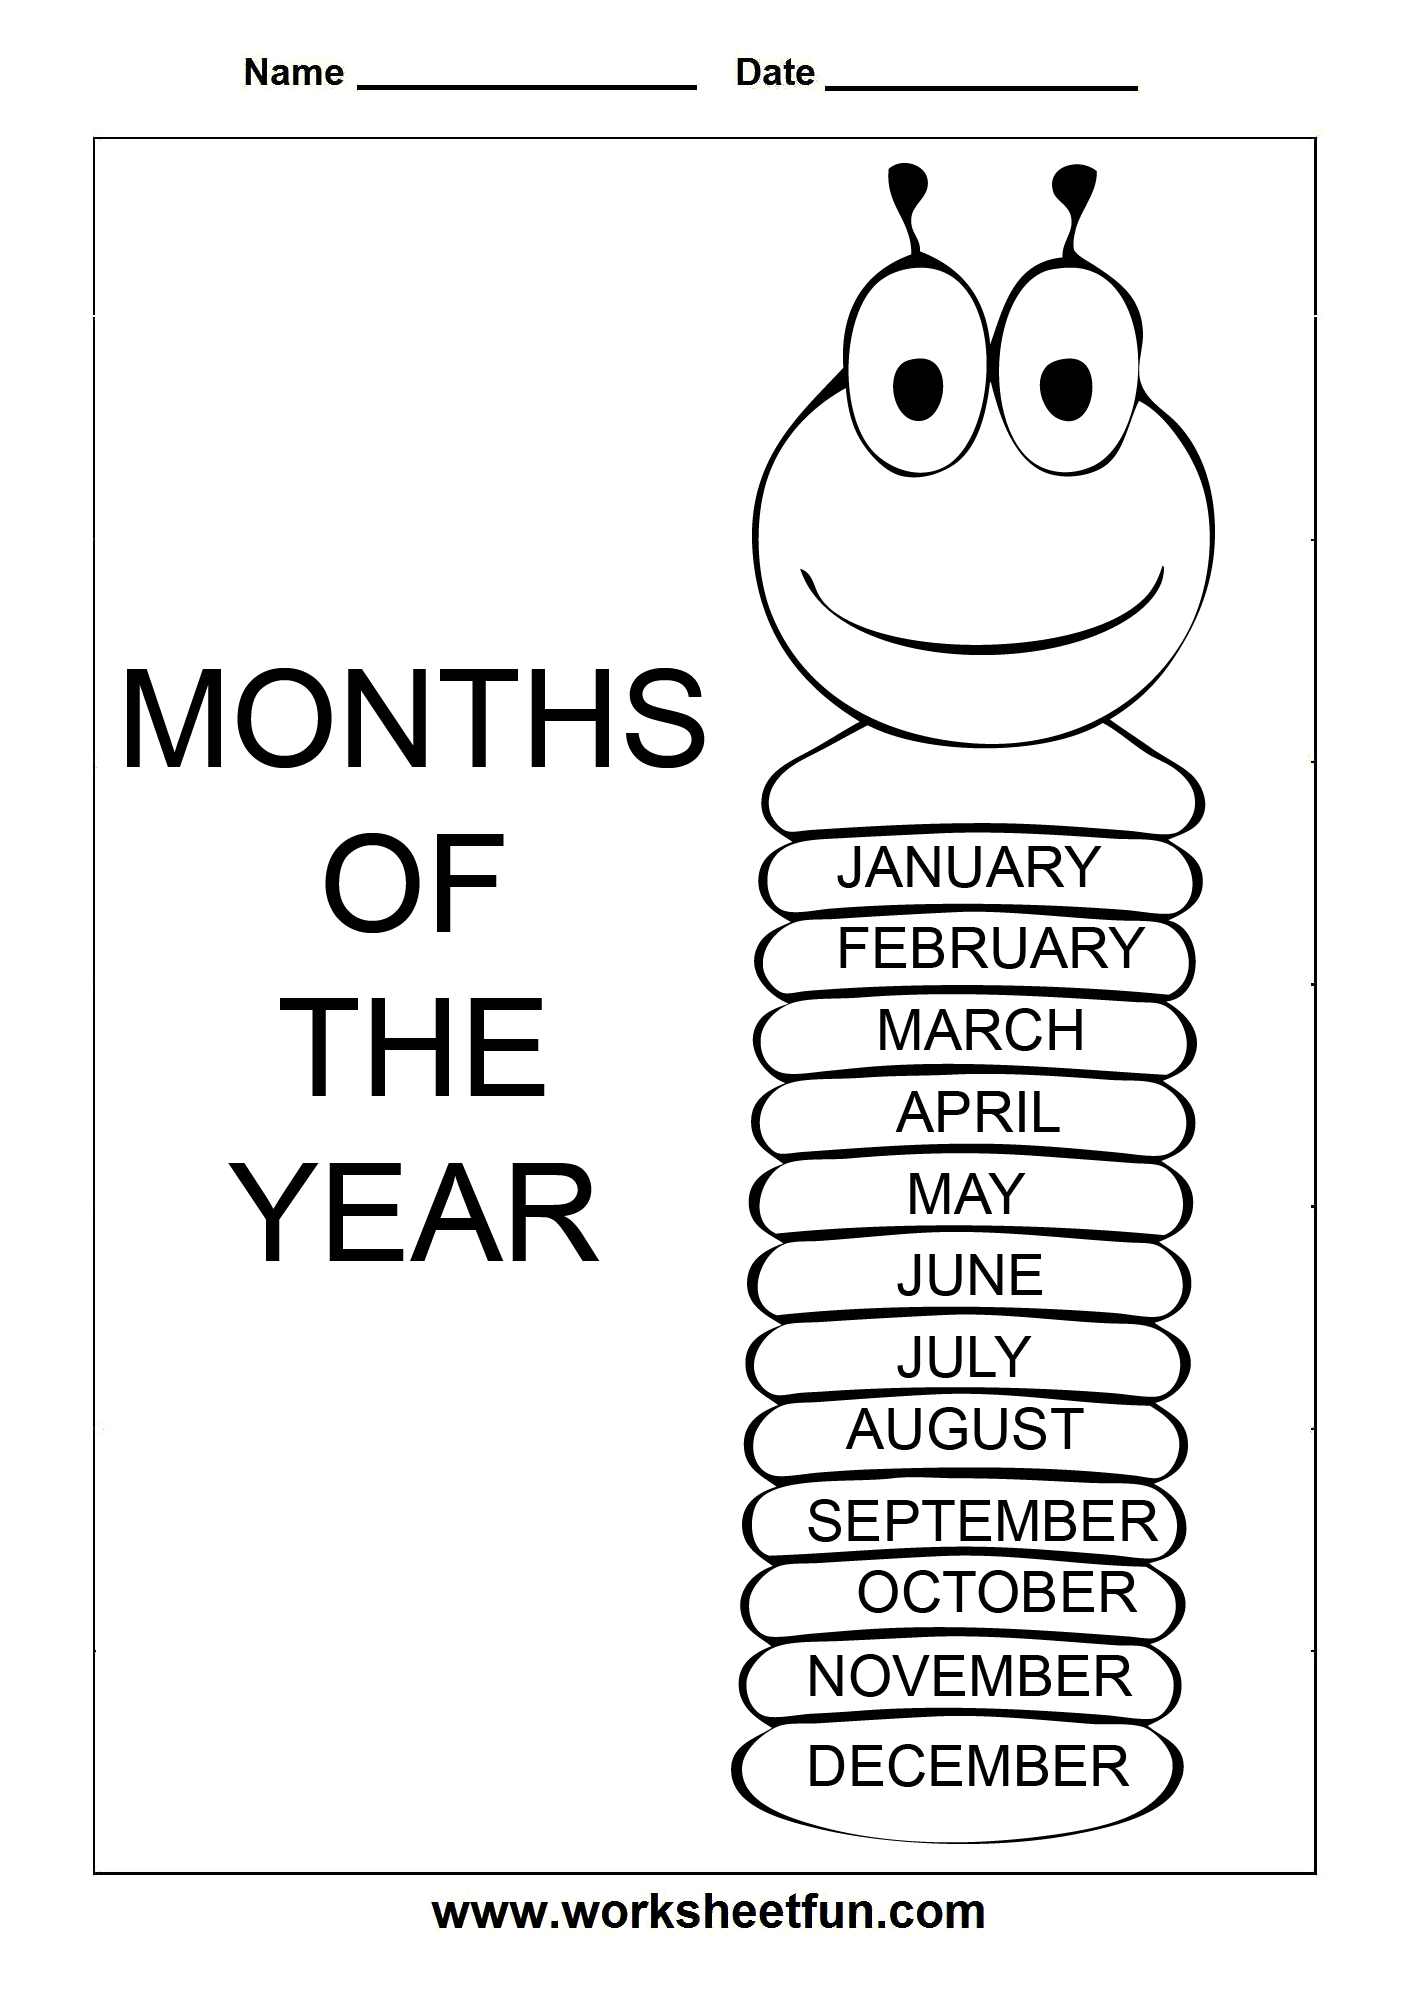 Months Of The Year Worksheets Free Printable - Intrepidpath